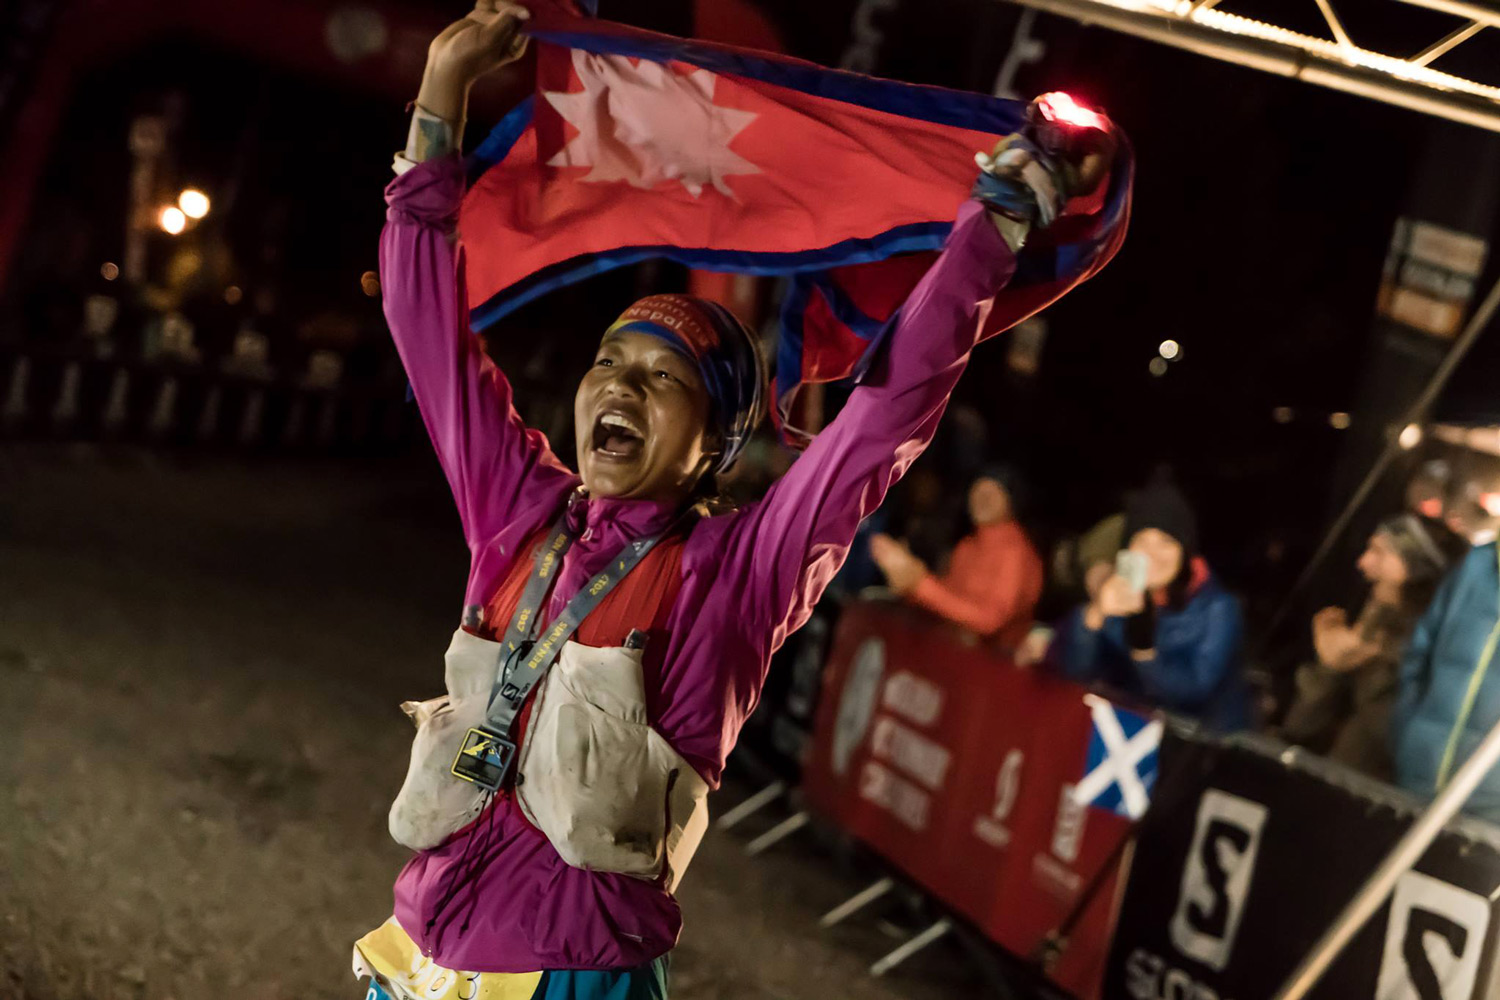 Nepali Mira Rai - an incredible victory, fifth overall in the Salomon Ben Nevis Ultra. ©iancorless.com / SWS